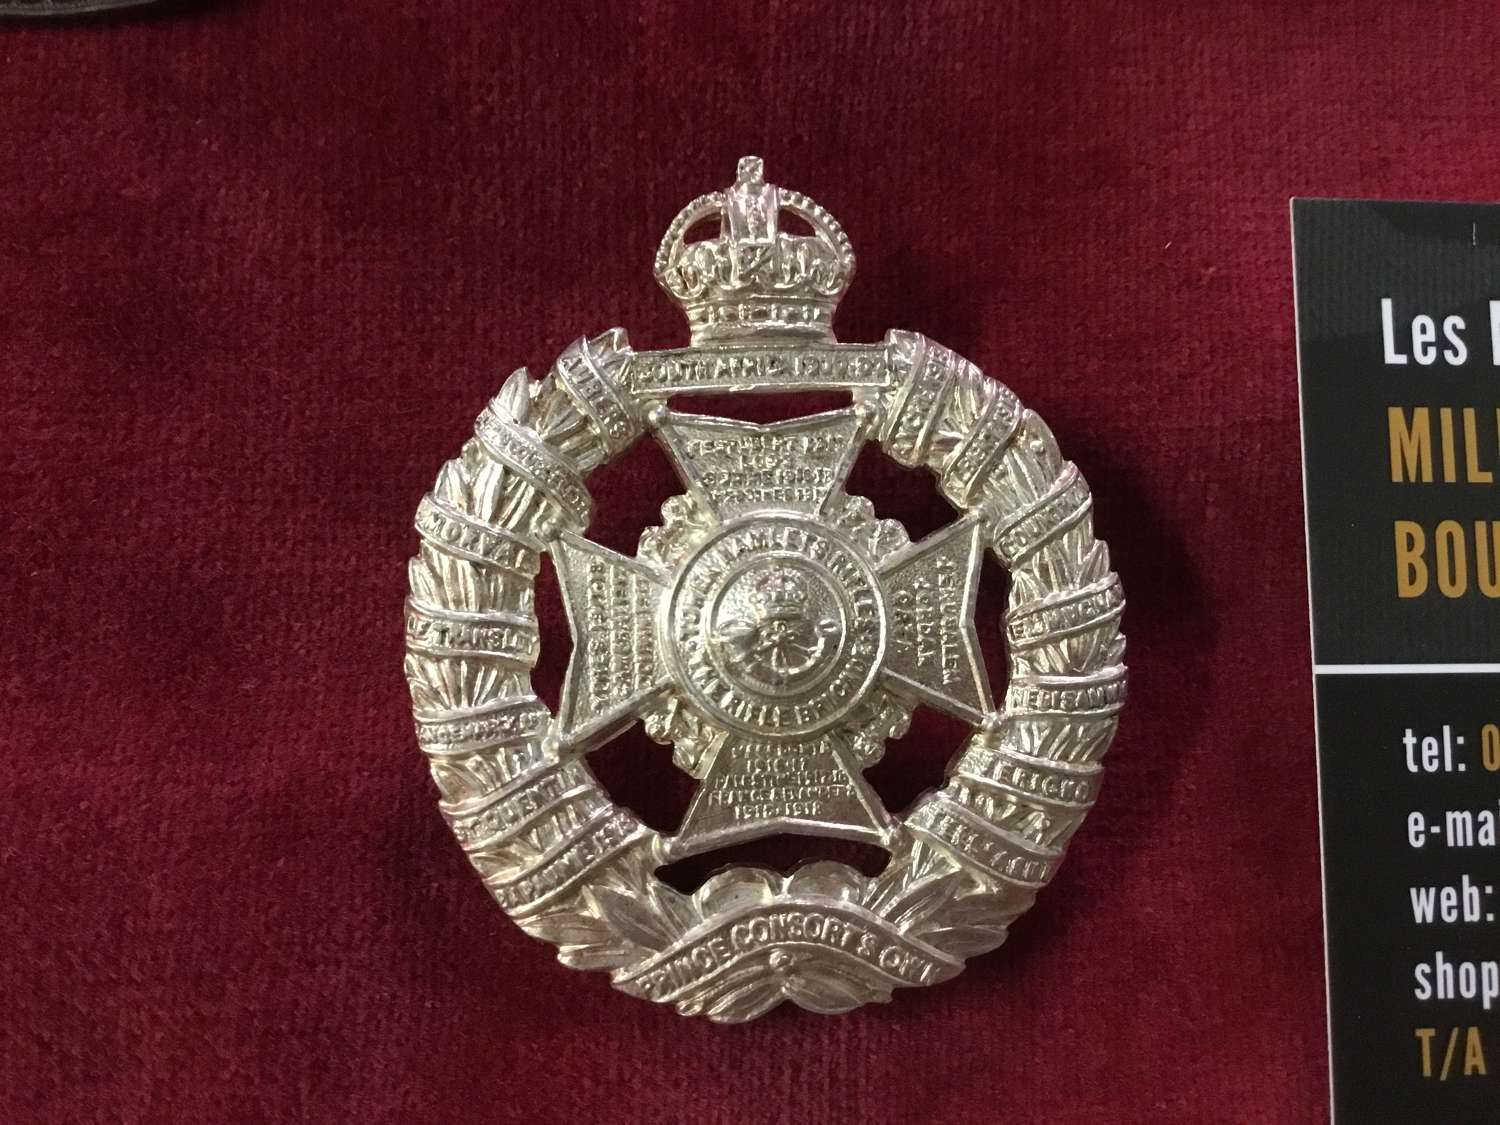 Tower Hamlets Rifles (Rifle Brigade) Officers Cap Badge